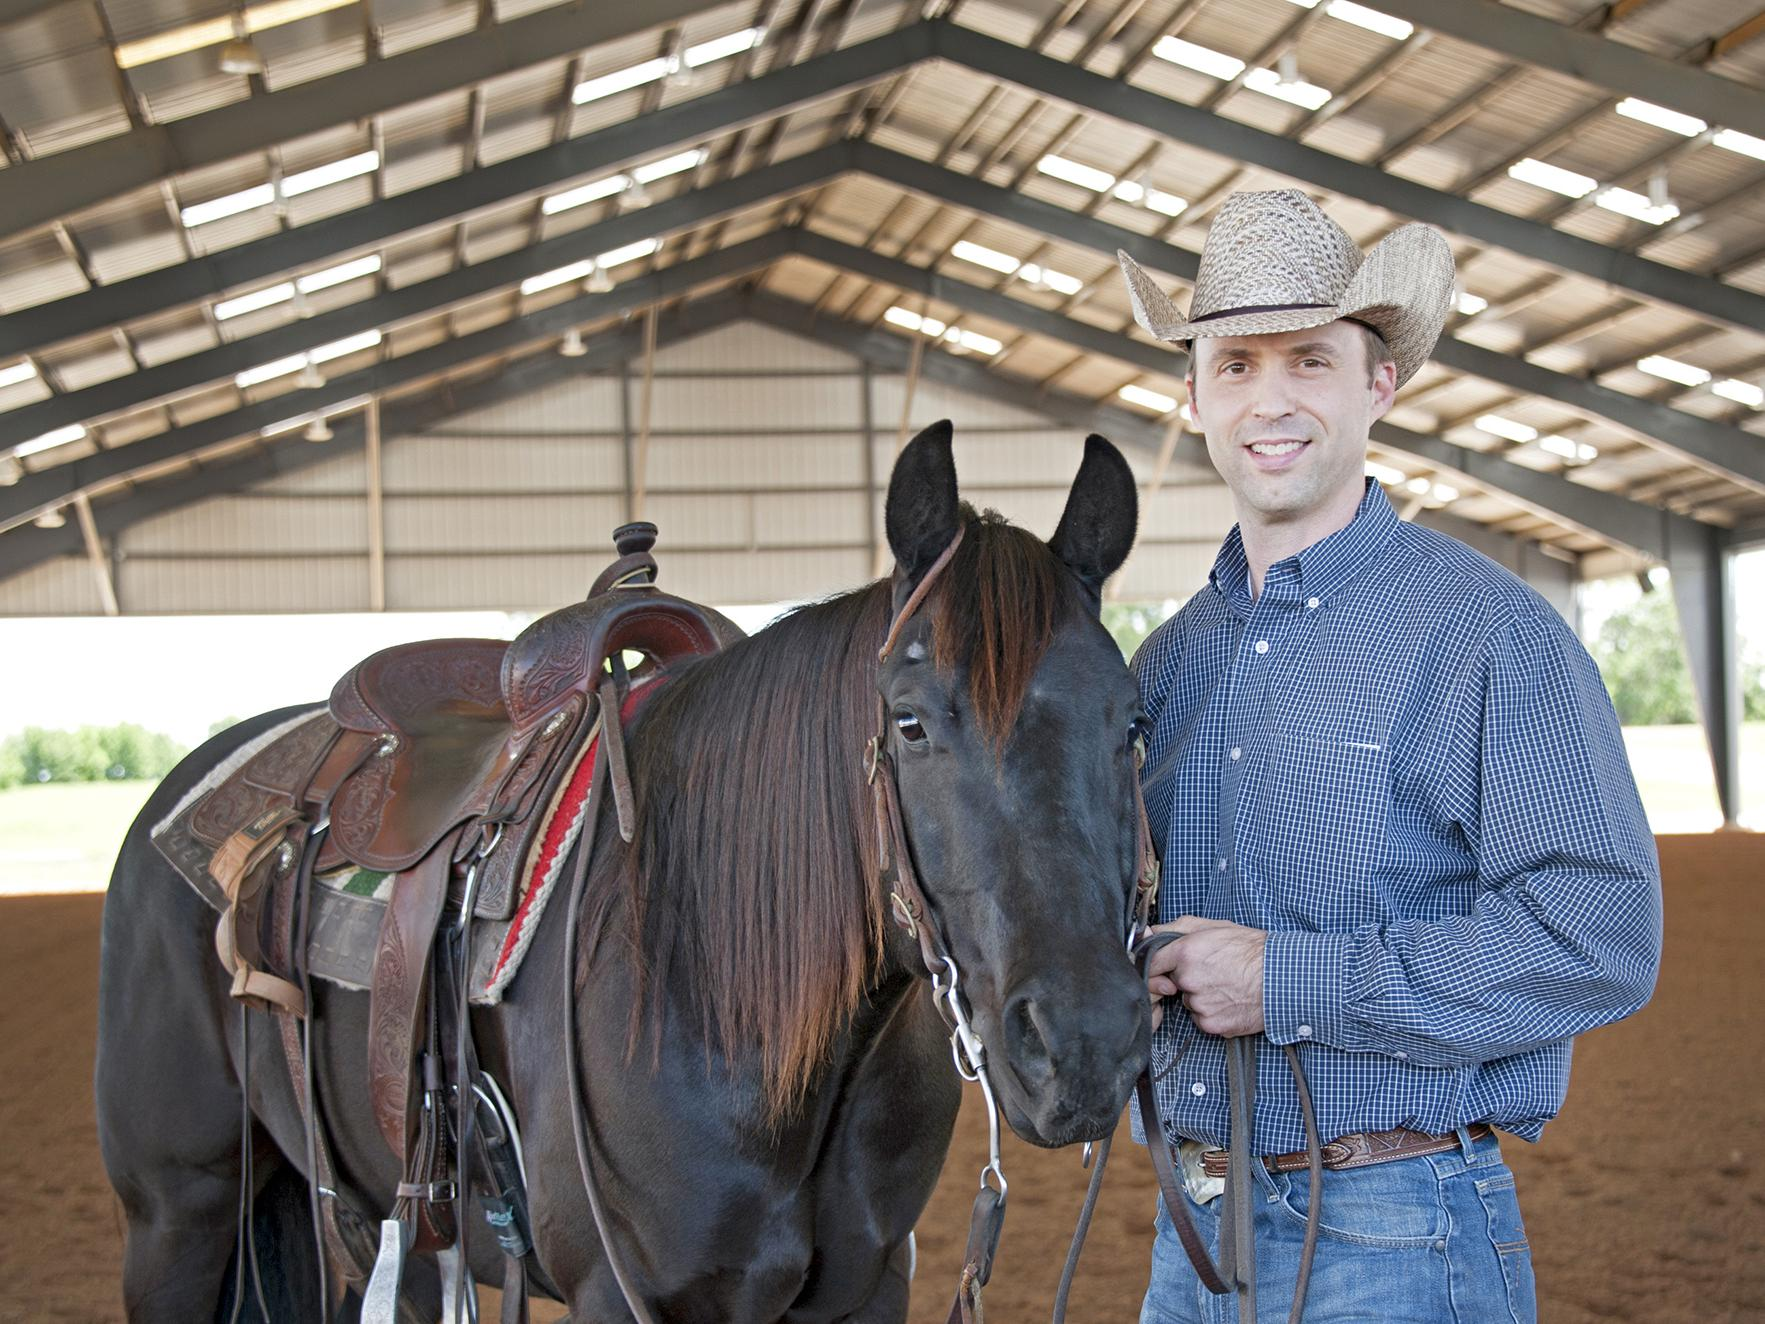 Mississippi State University Extension Service equine specialist Clay Cavinder will assist in the Horse Management: 101 classes from April 11 to May 16 at the Lee County Agri-Center in Verona. (File photo by MSU Extension Service/Kat Lawrence)